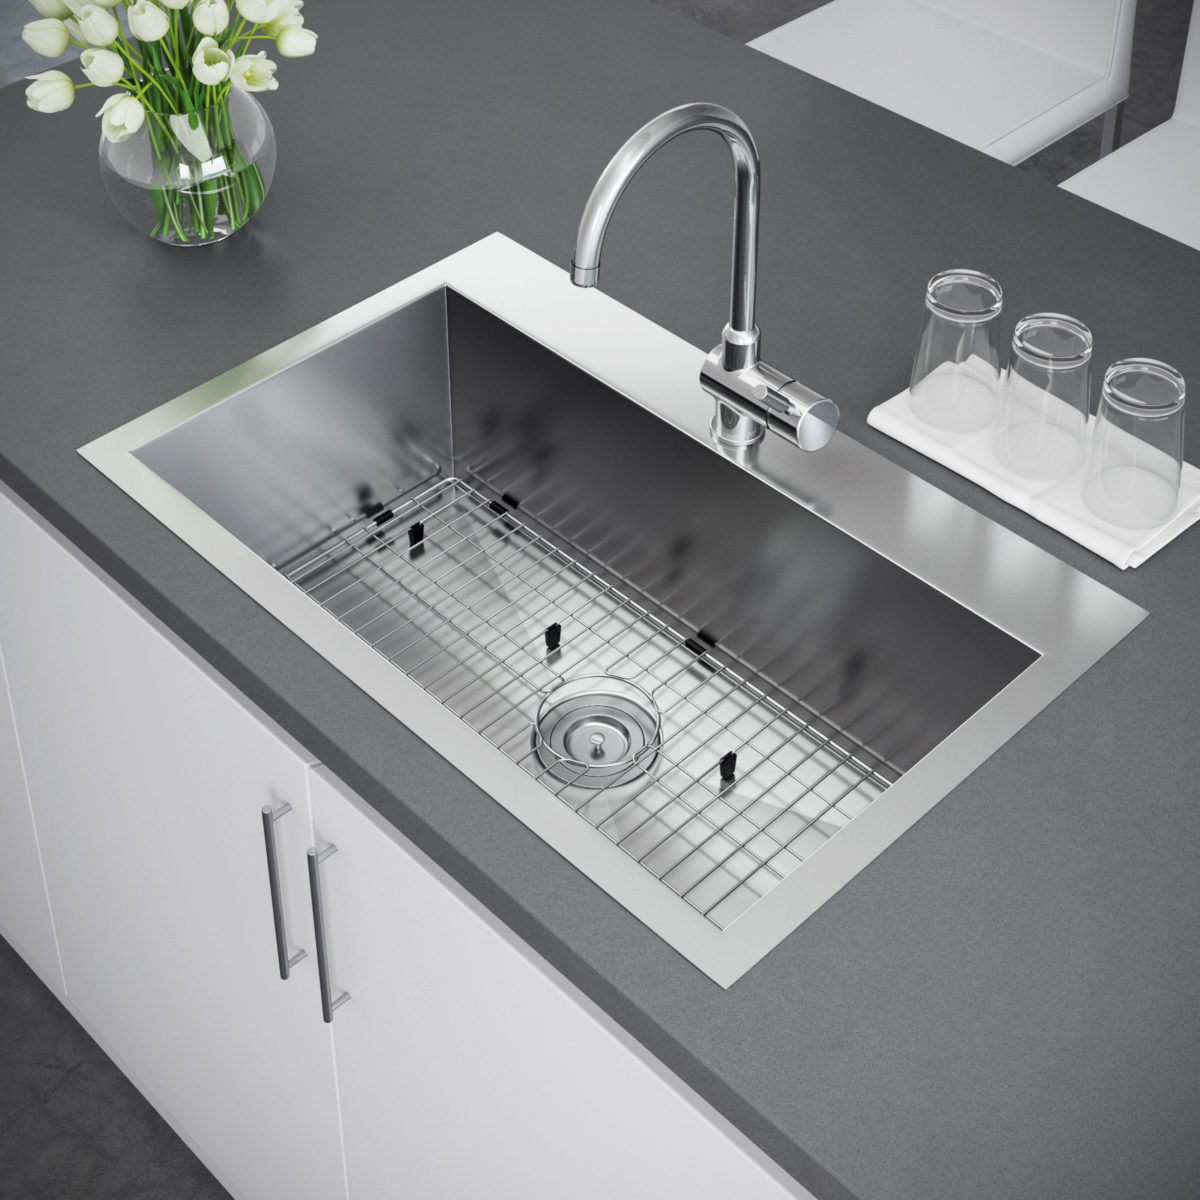 topmount kitchen sink exclusive heritage 33 x 22 single bowl topmount 2866